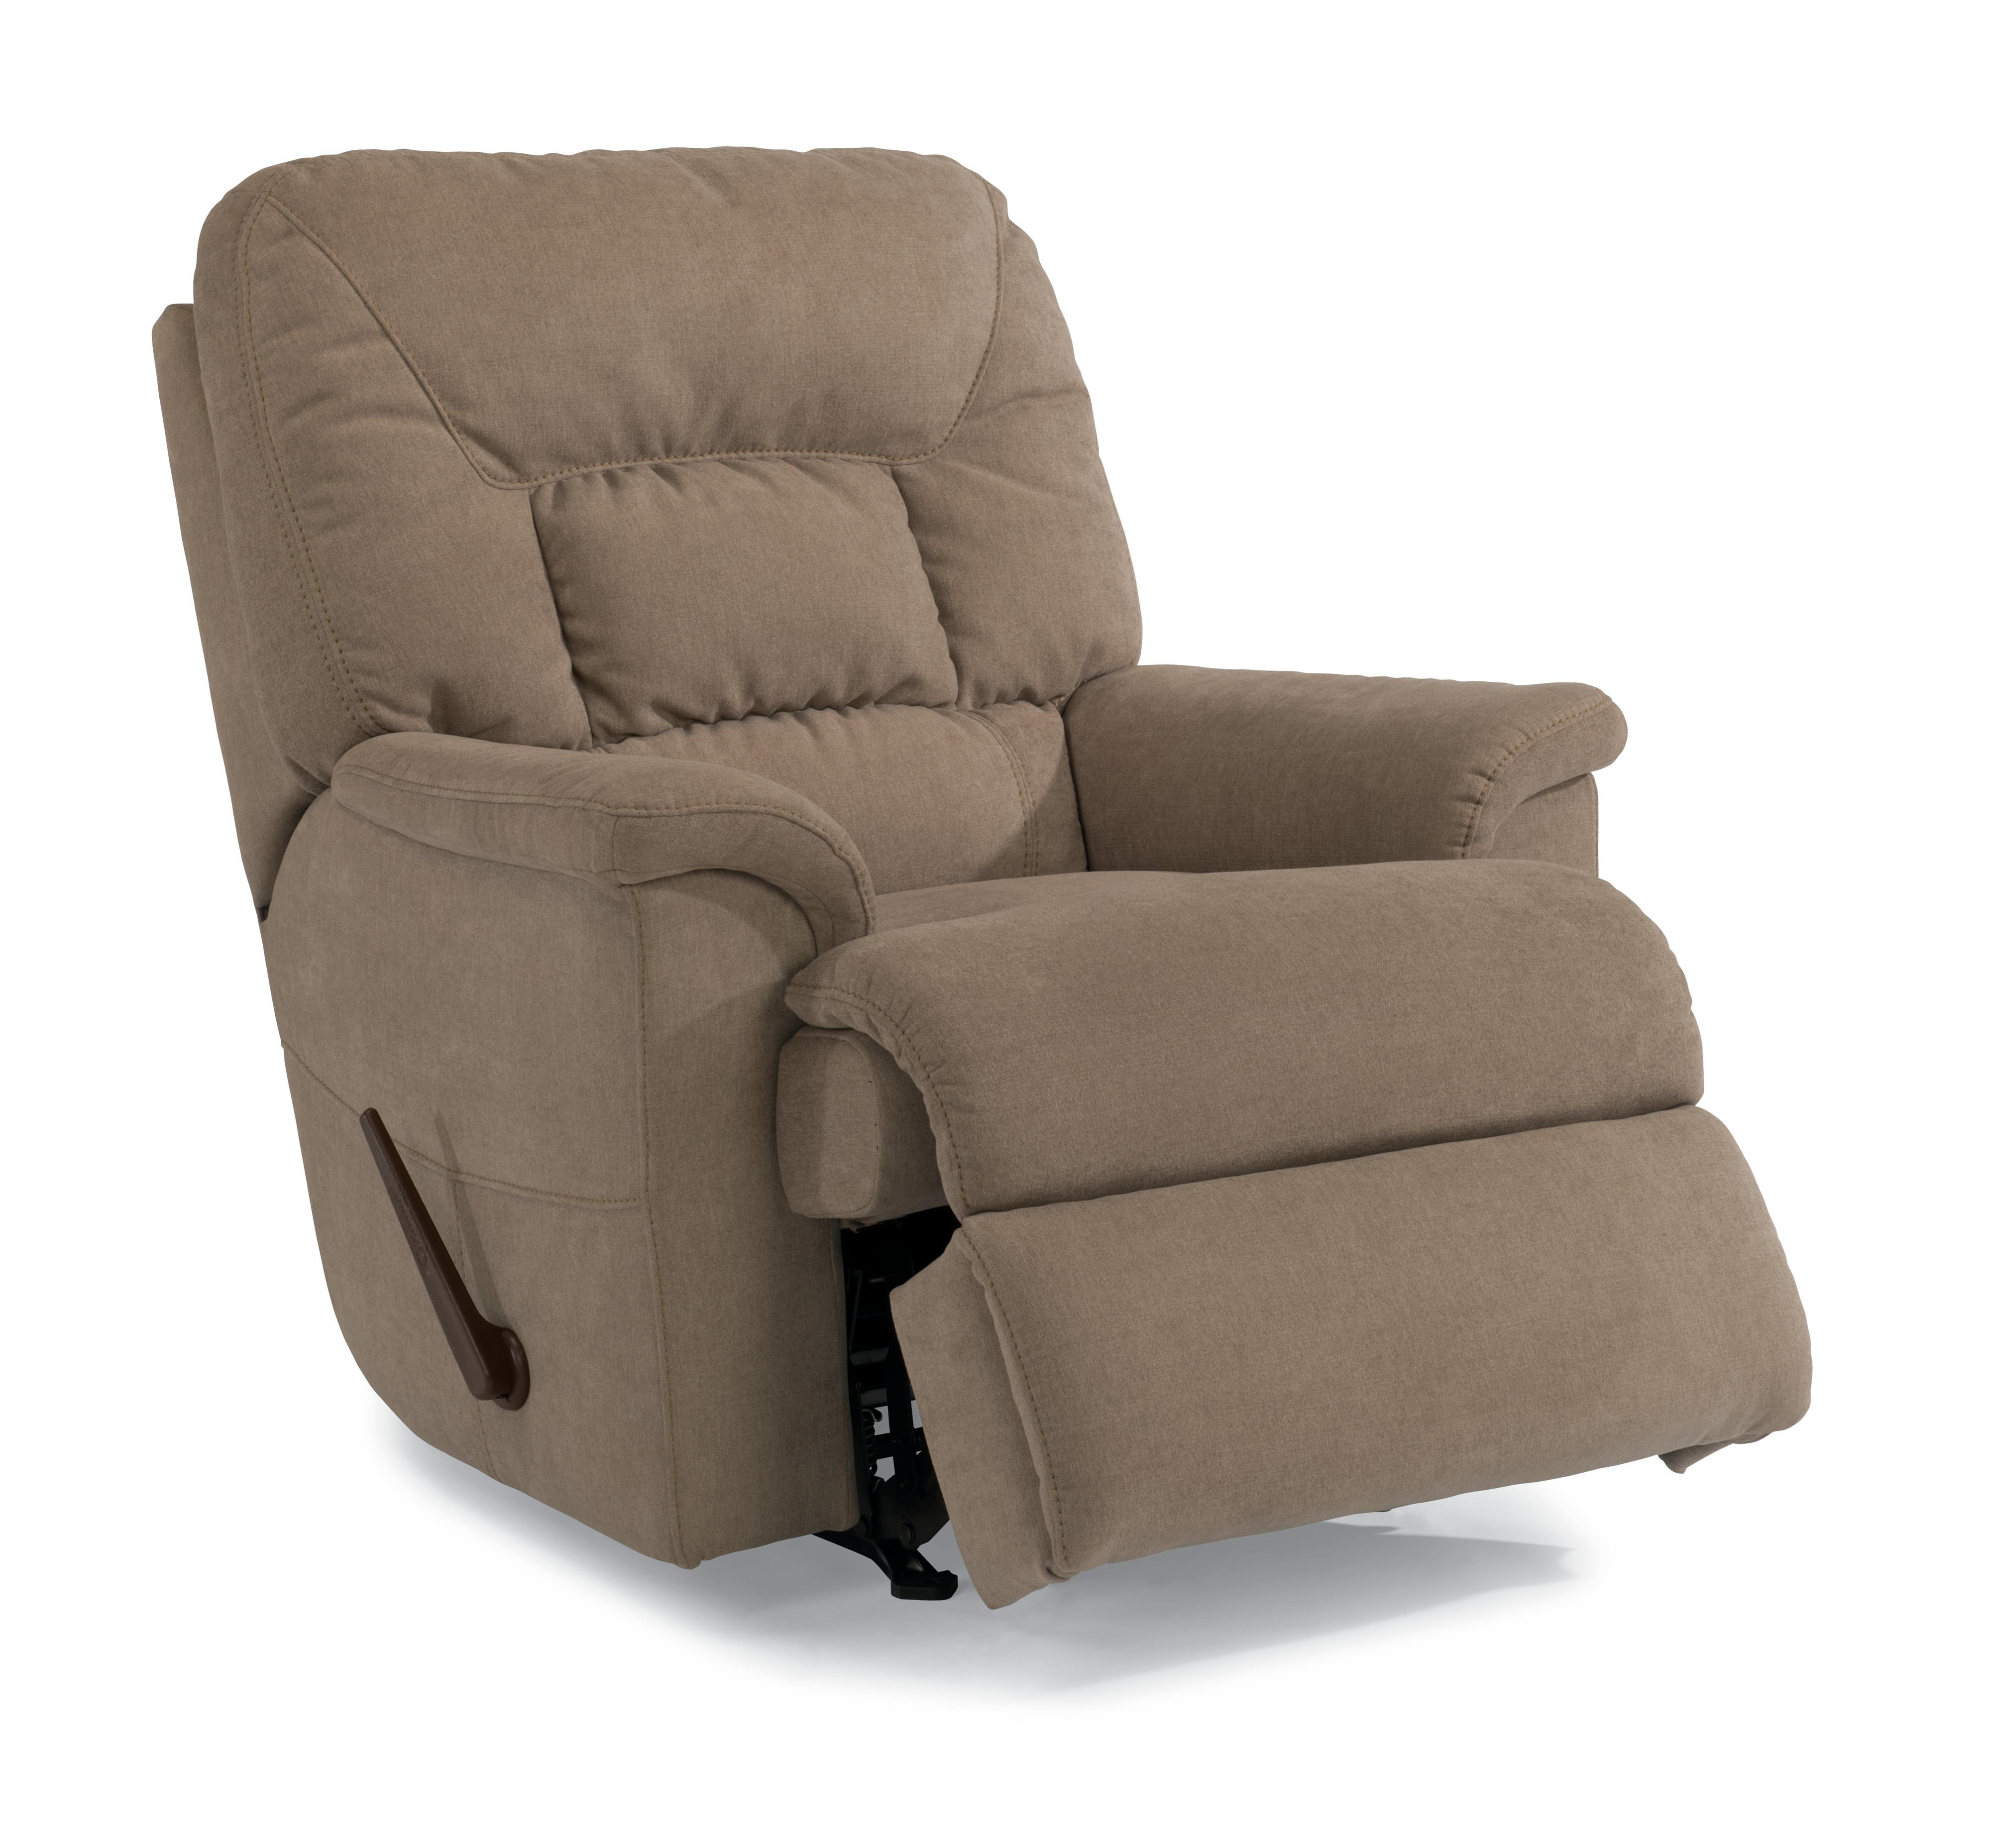 Flexsteel Latitudes - Great Escape Rocking Recliner - Item Number: F1221-510